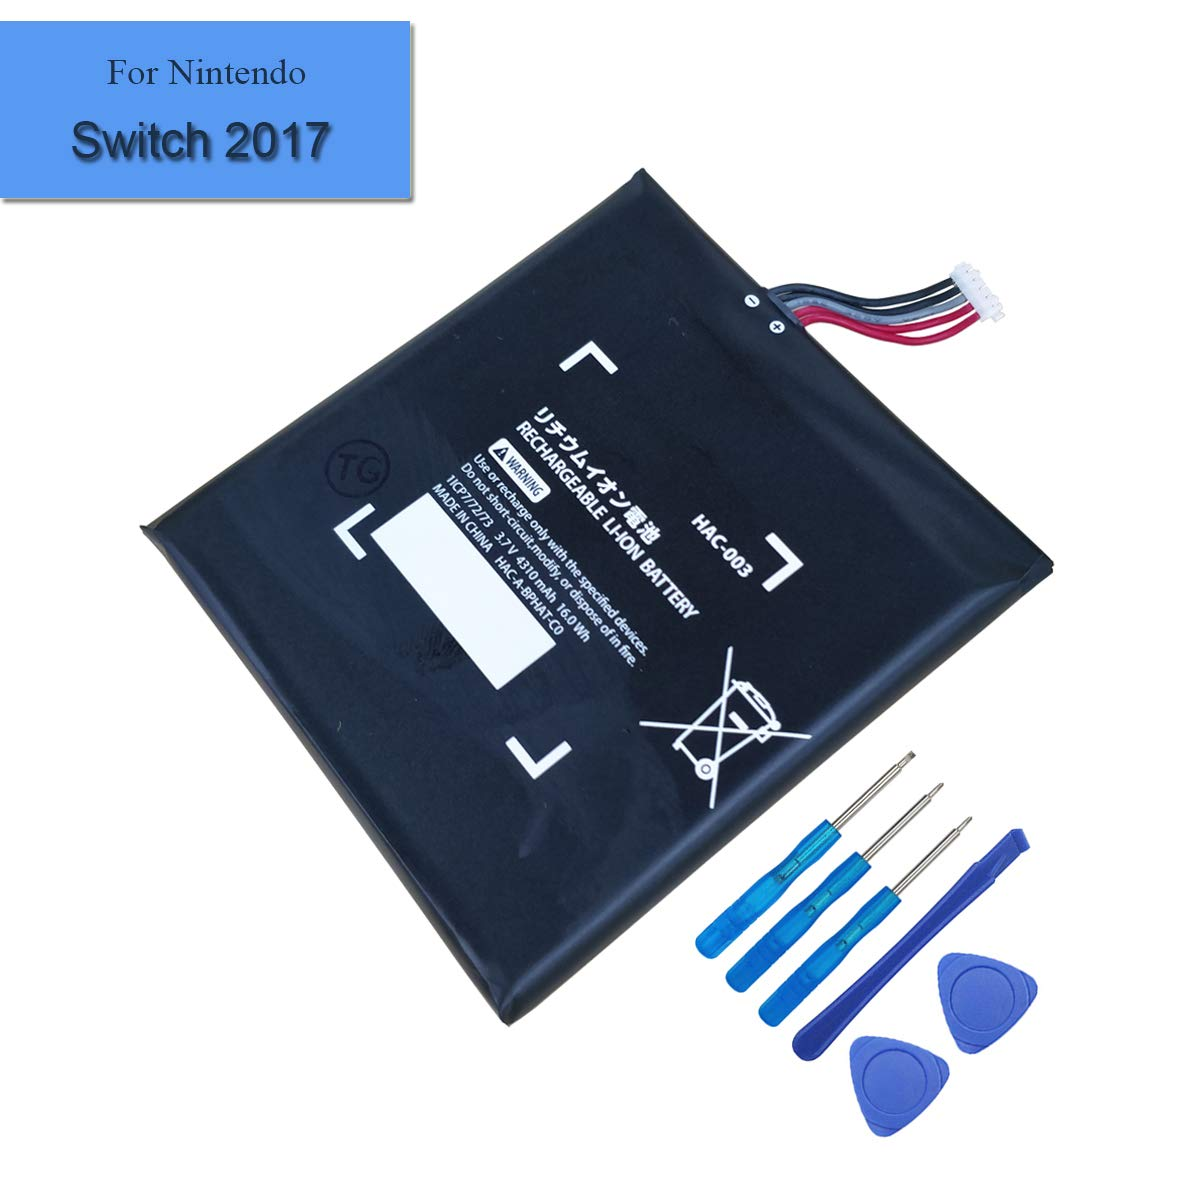 New Replacement HAC-003 Battery Compatible with Nintendo Switch Game Console 2017 Internal Battery 4310mAh 3.7V by E-YIIVIIL